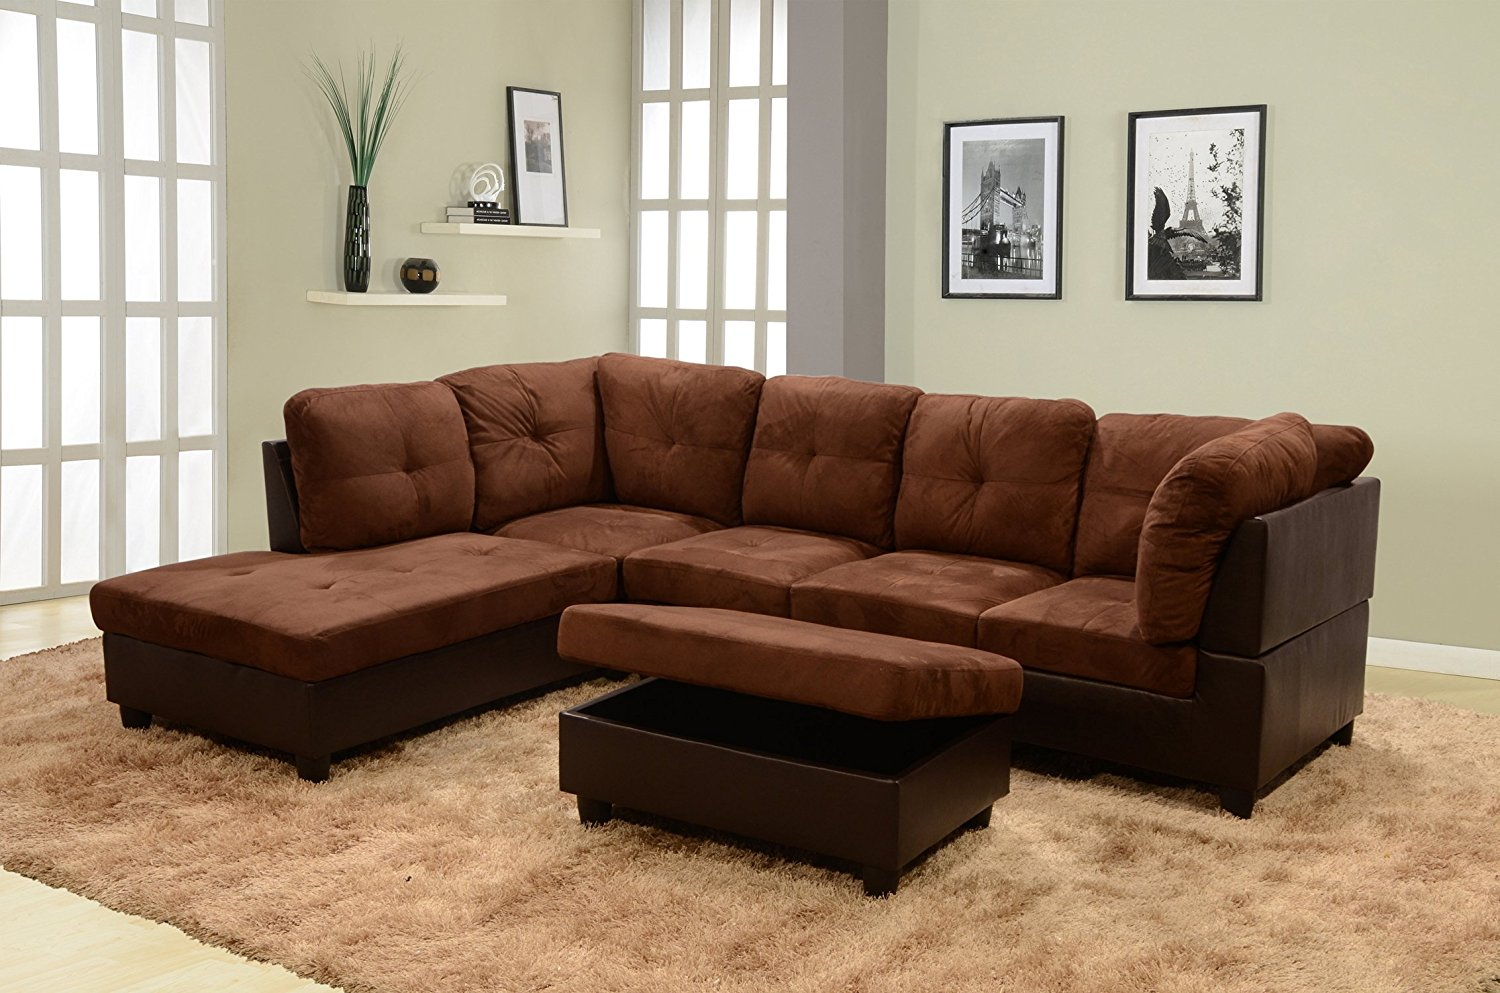 Groovy Lifestyle Coffee 3 Piece Microfiber Faux Leather Left Facing Sectional Sofa Set With Free Storage Ottoman Cjindustries Chair Design For Home Cjindustriesco